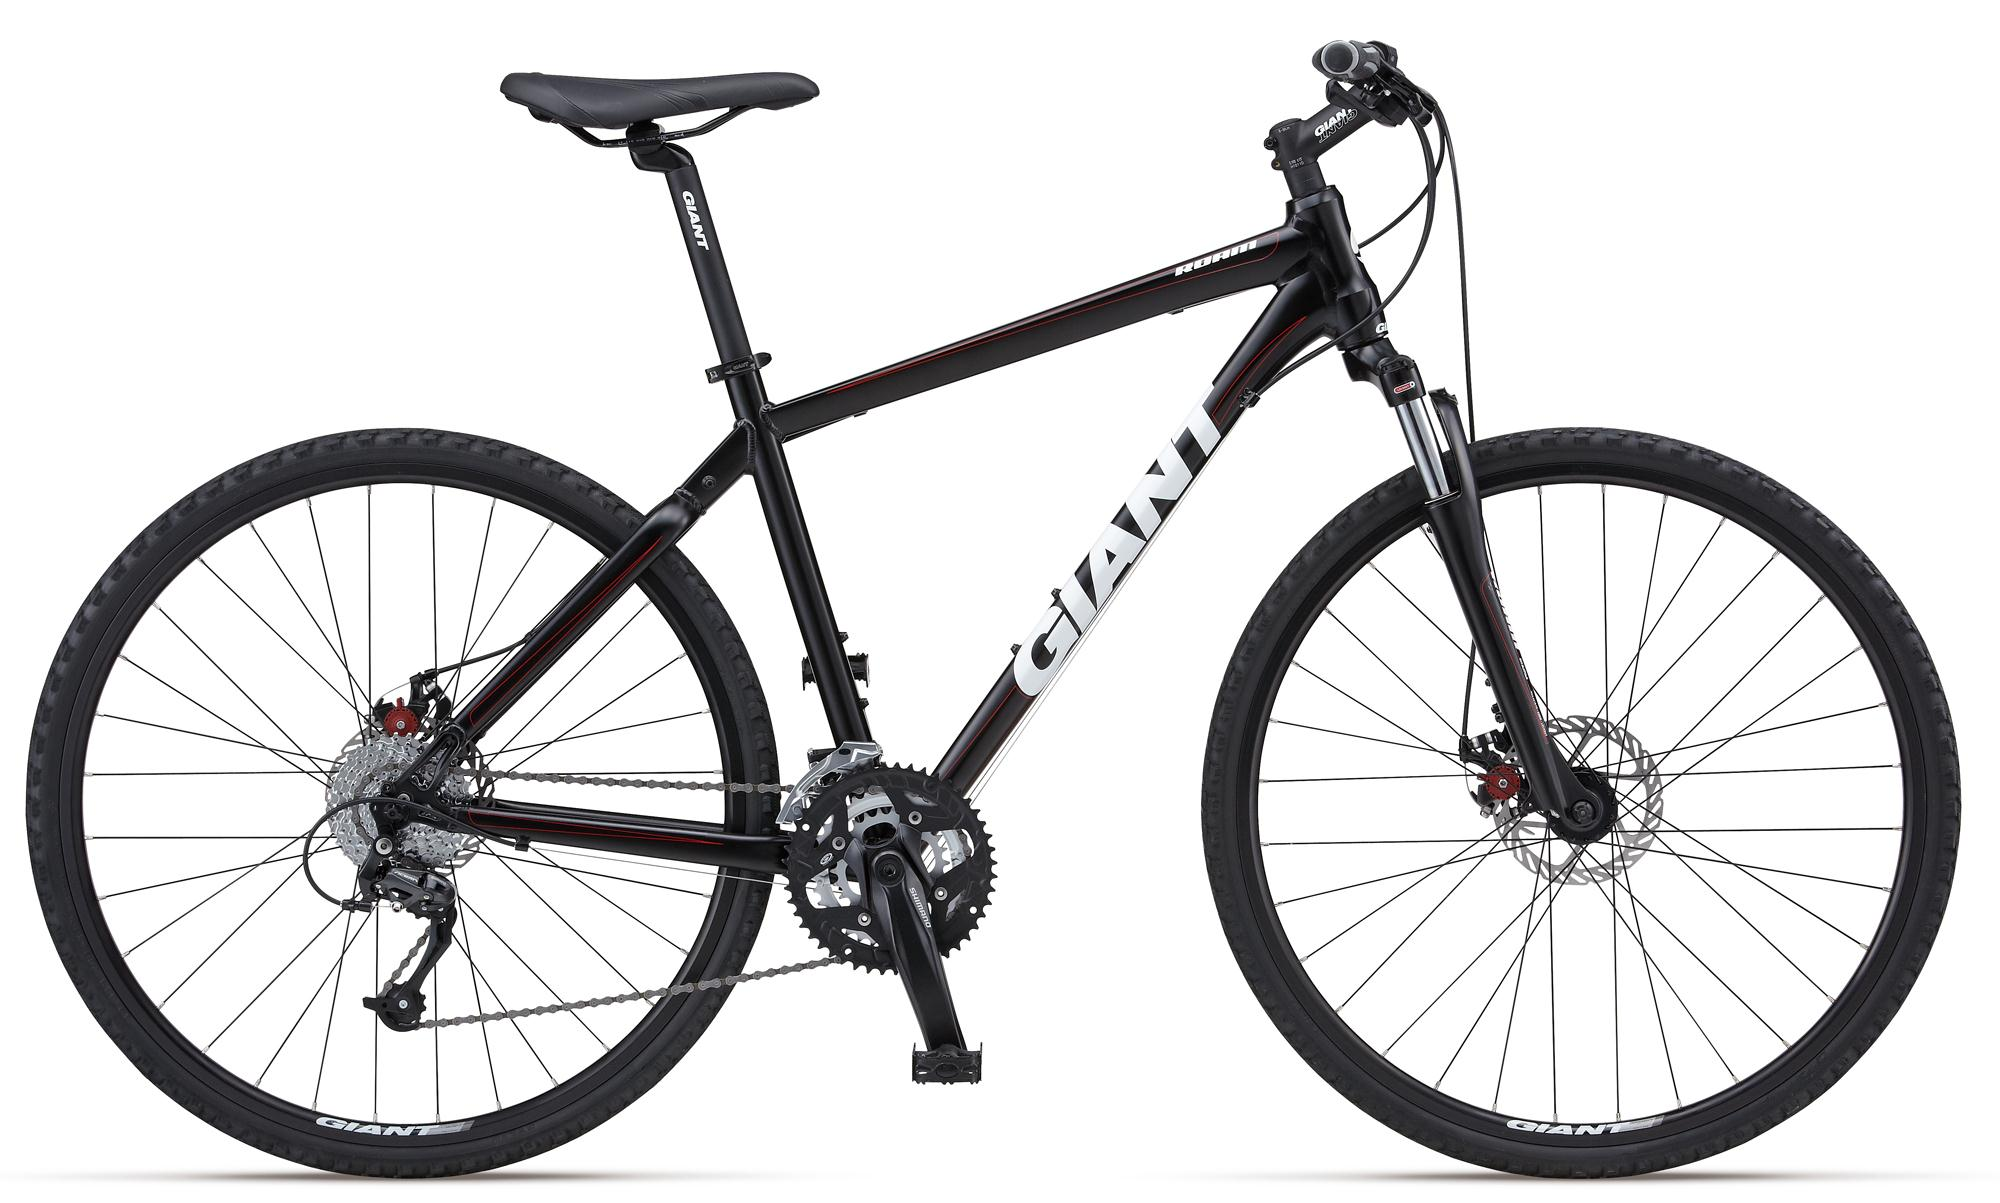 http://www.giant-bicycles.com/_generated/_generated_ru/bikes/models/images/2000/2012/Roam_1_black.jpg